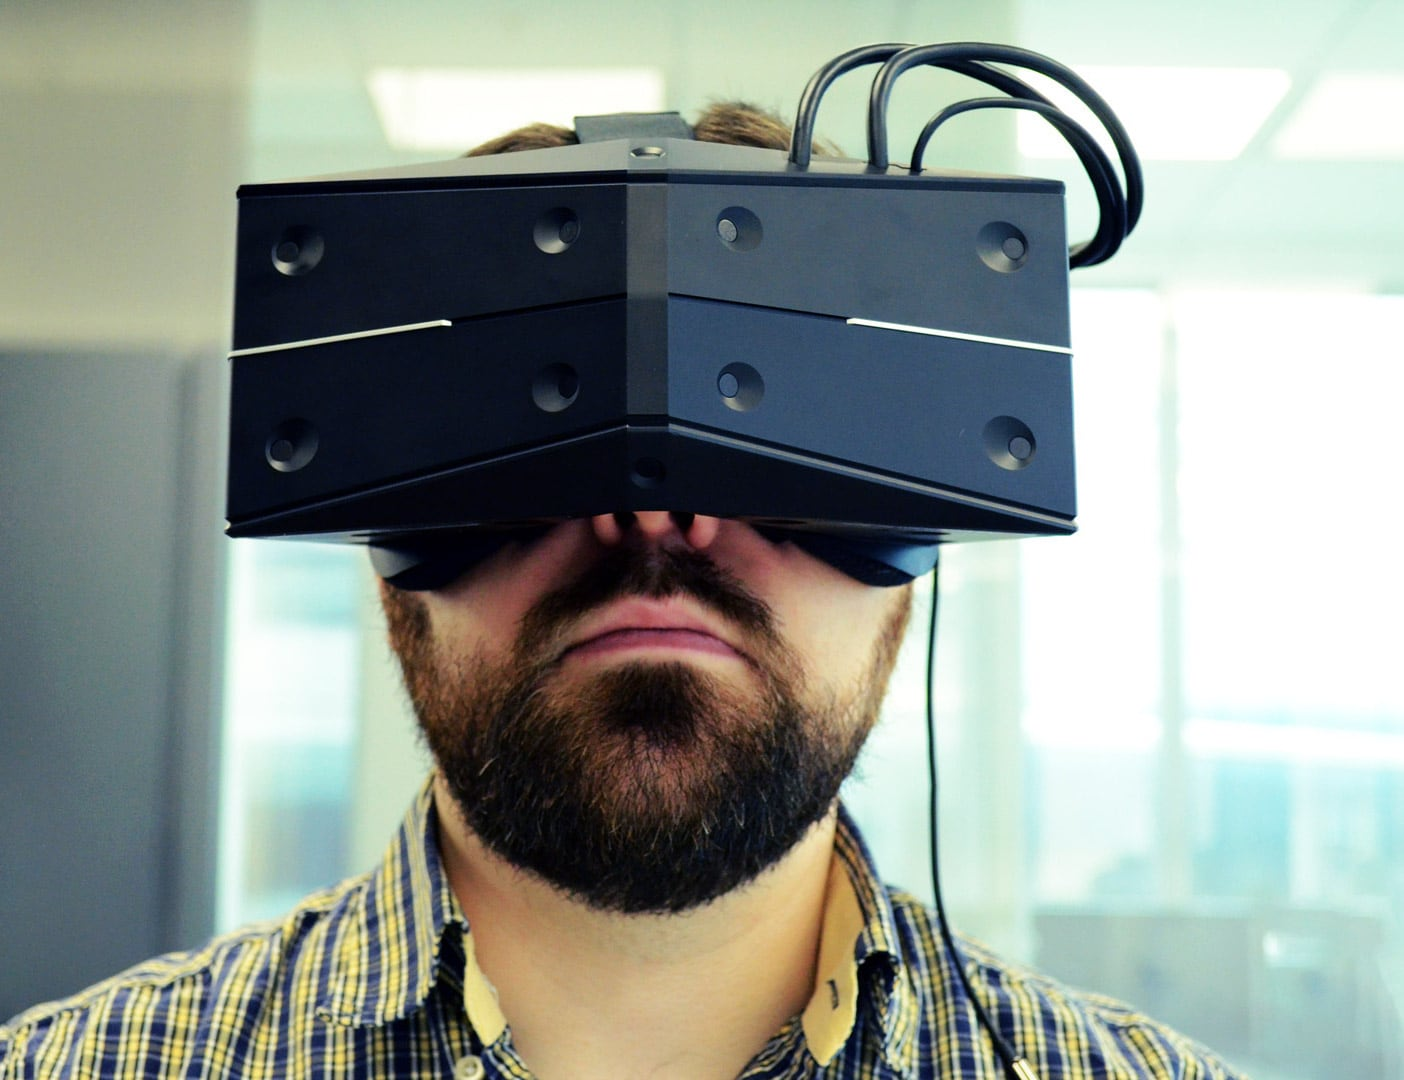 StarVR One VR Headset is the future of VR gaming